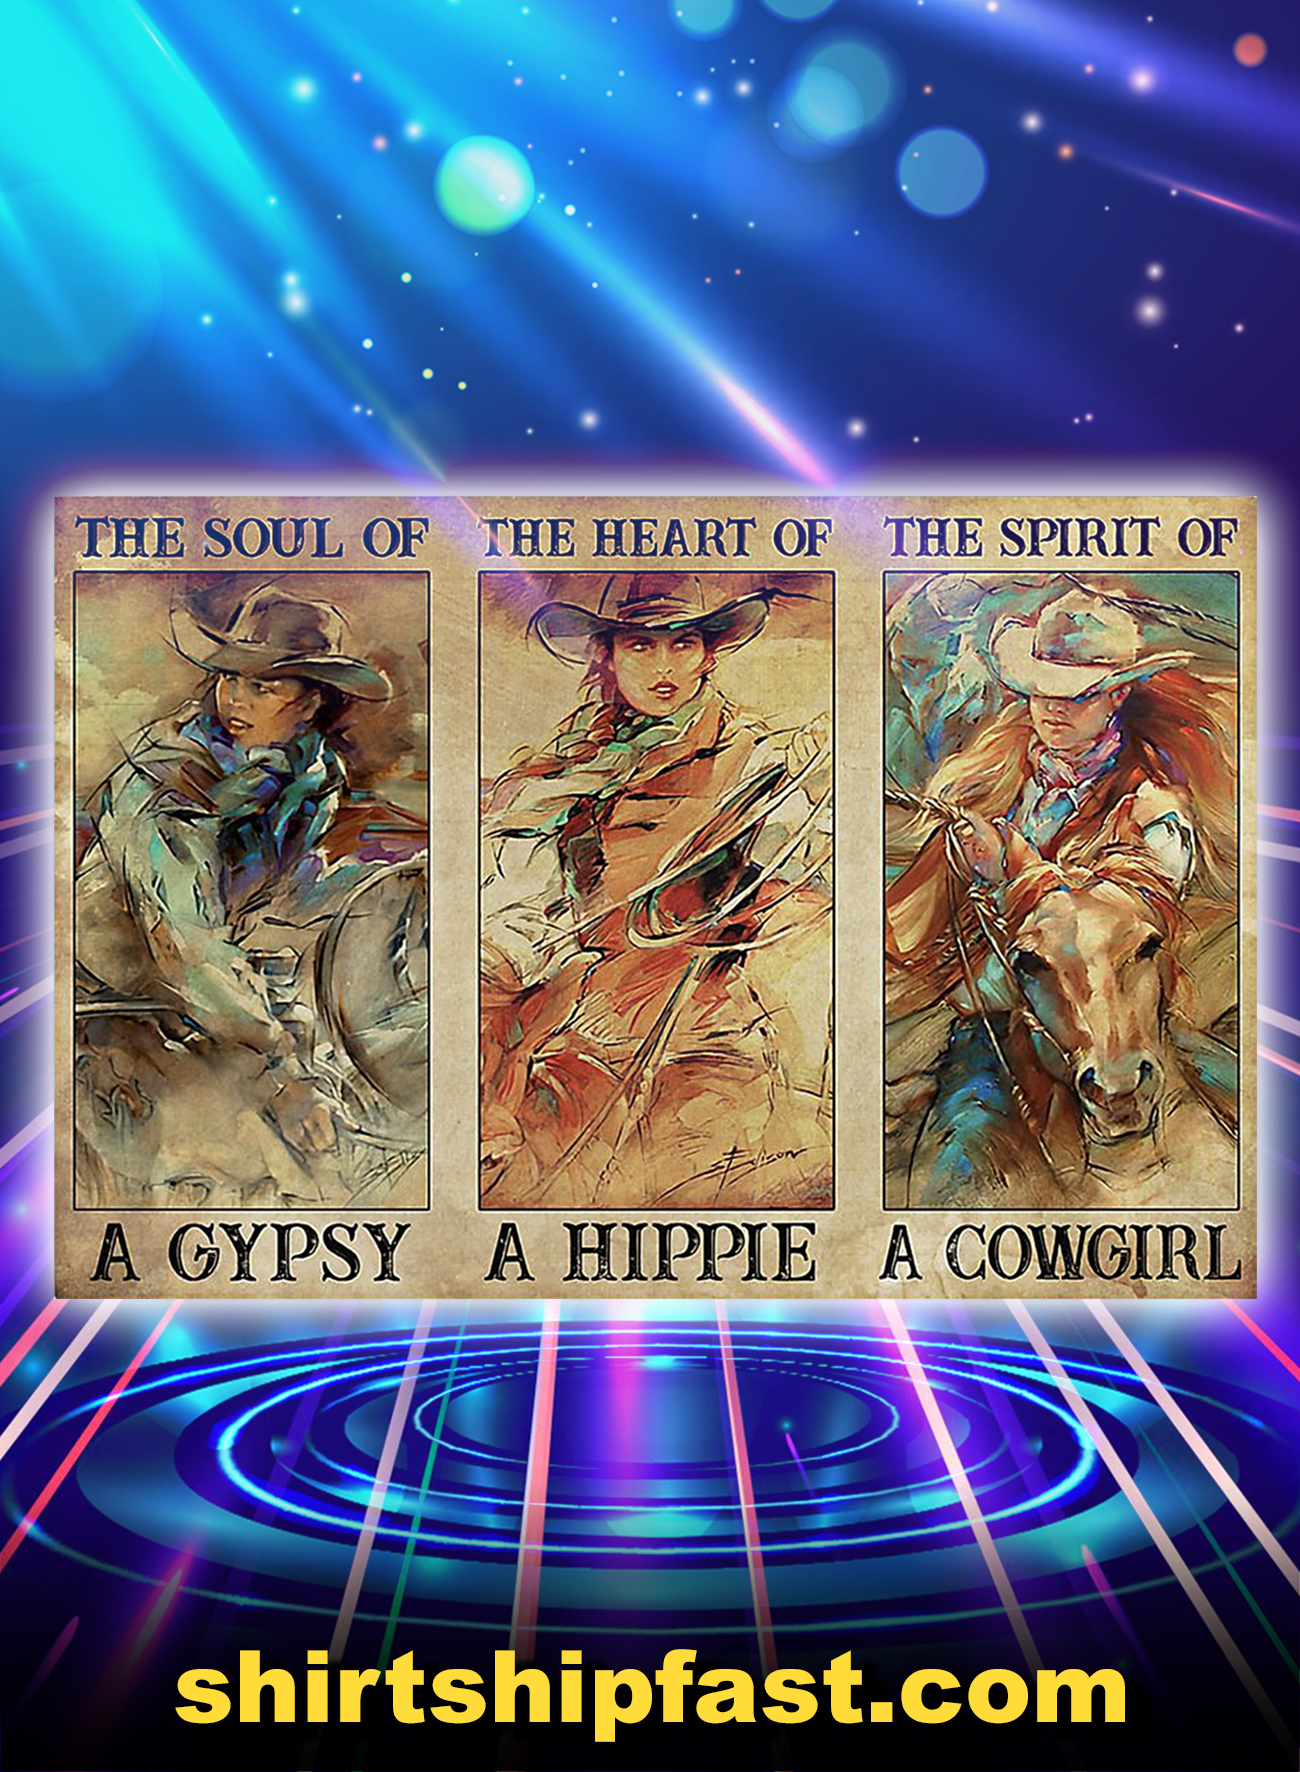 Spirit of a cowgirl the soul of a gypsy poster - A1